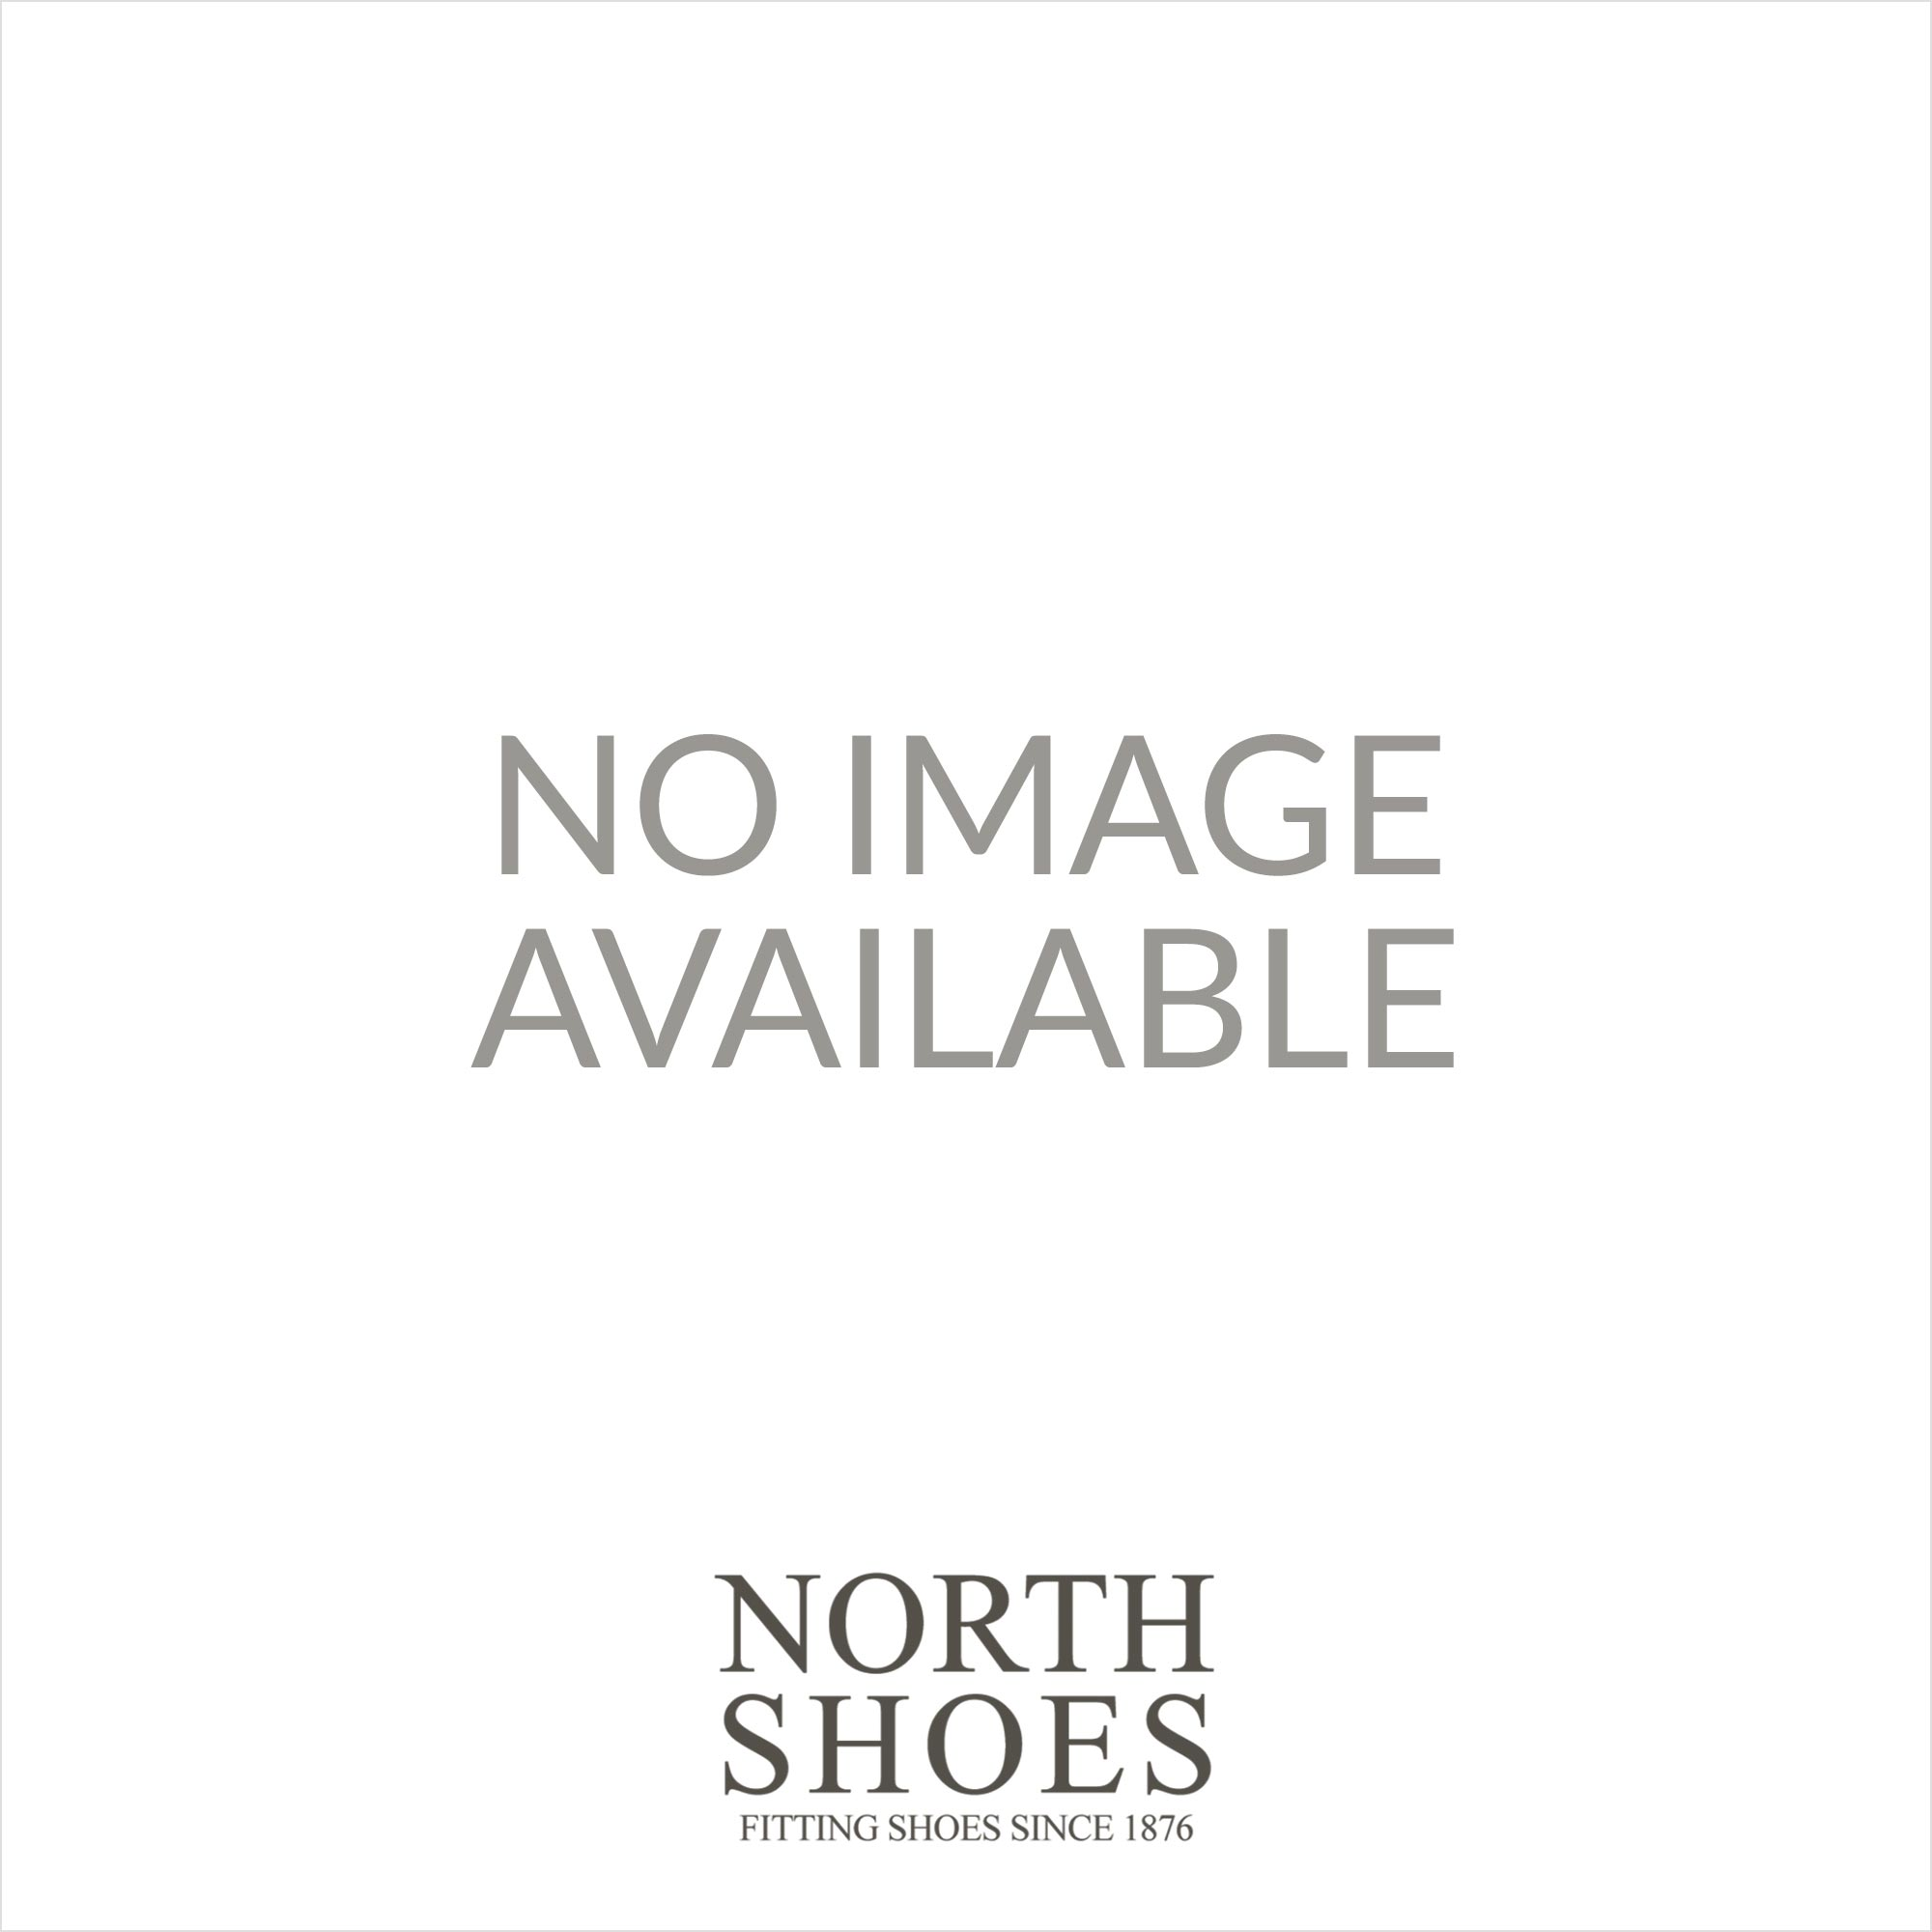 4d6c26f9f05d Clarks Sail Beach Leather Womens Buckle Strapy Jewelled Sandal - Clarks  from North Shoes UK